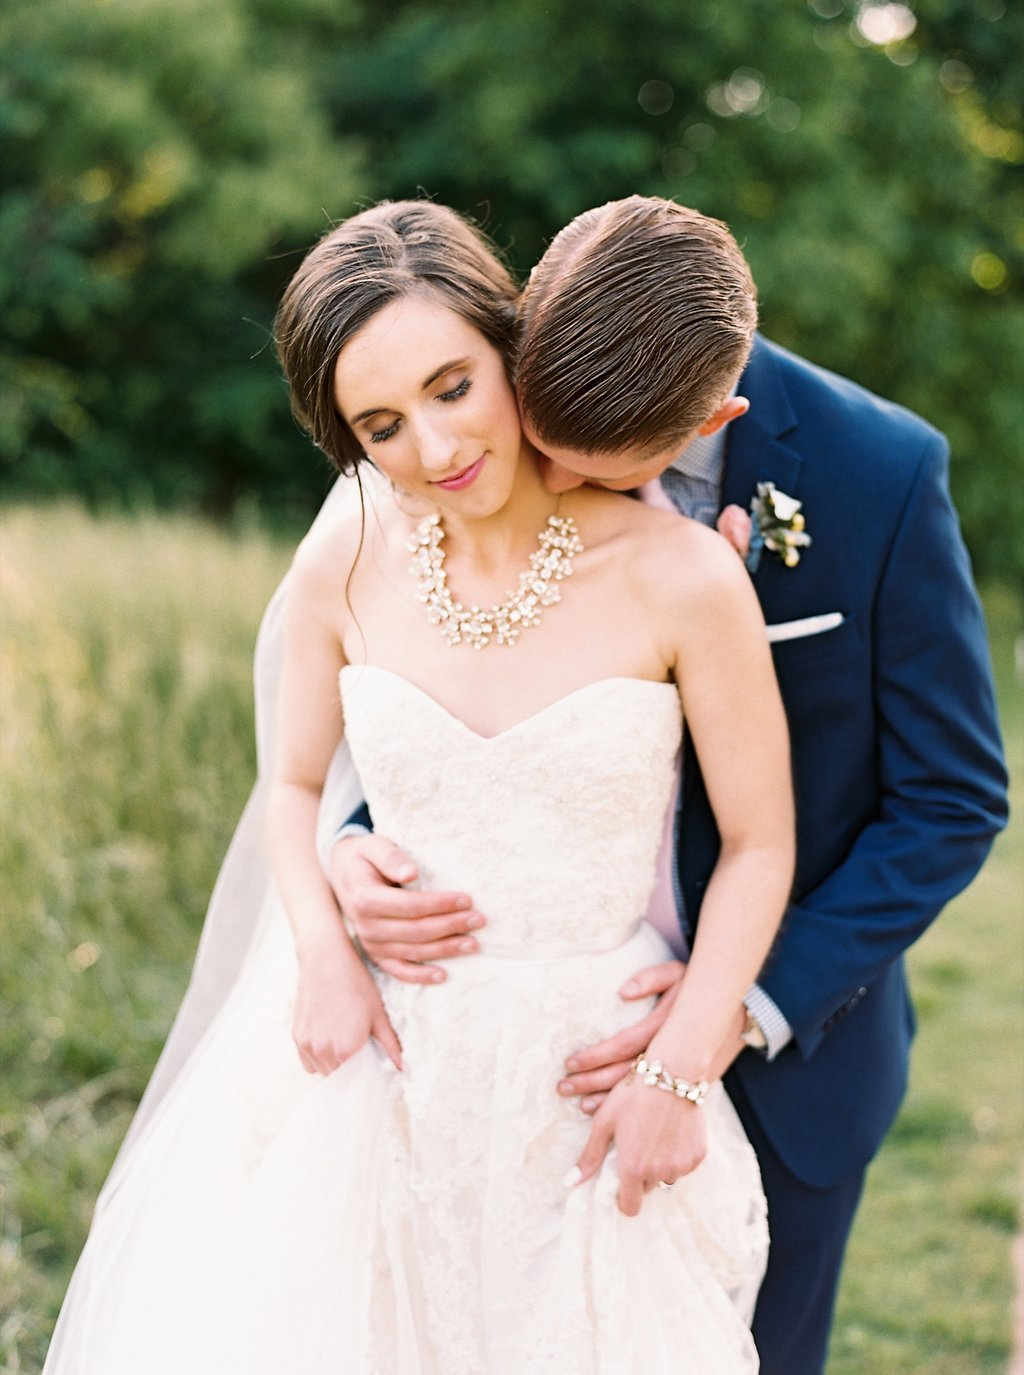 Southern Bride in Floral Lace and Tulle Reem Acra Gown with Kate Spade Crystal Arches Necklace and Low Messy Bun | Sweet Newlywed Photos after our Wedding Ceremony | Blush and Navy Wedding with Fuchsia, French Blue and Gold Accents | Simply Jessica Marie's Southern Wedding at Gettysvue Golf Course and Country Club in Knoxville Tennessee | Photo by Perry Vaile Photography